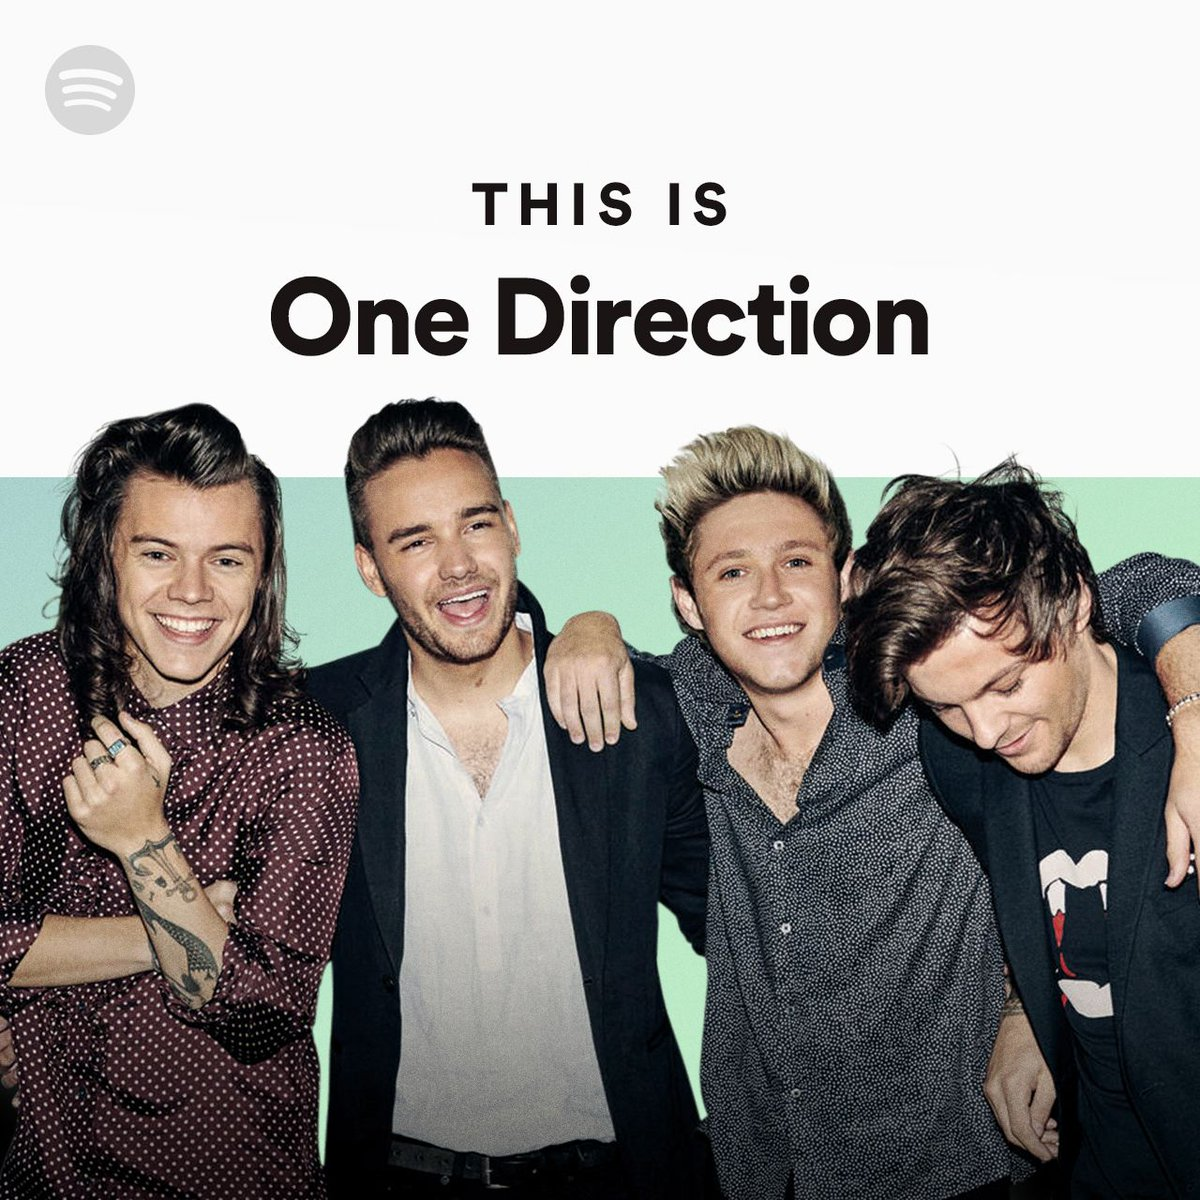 Search 'This is One Direction' on Spotify to stream the enhanced playlist including videos now! https://t.co/6VR81CqPBH https://t.co/USe9pfLW1H